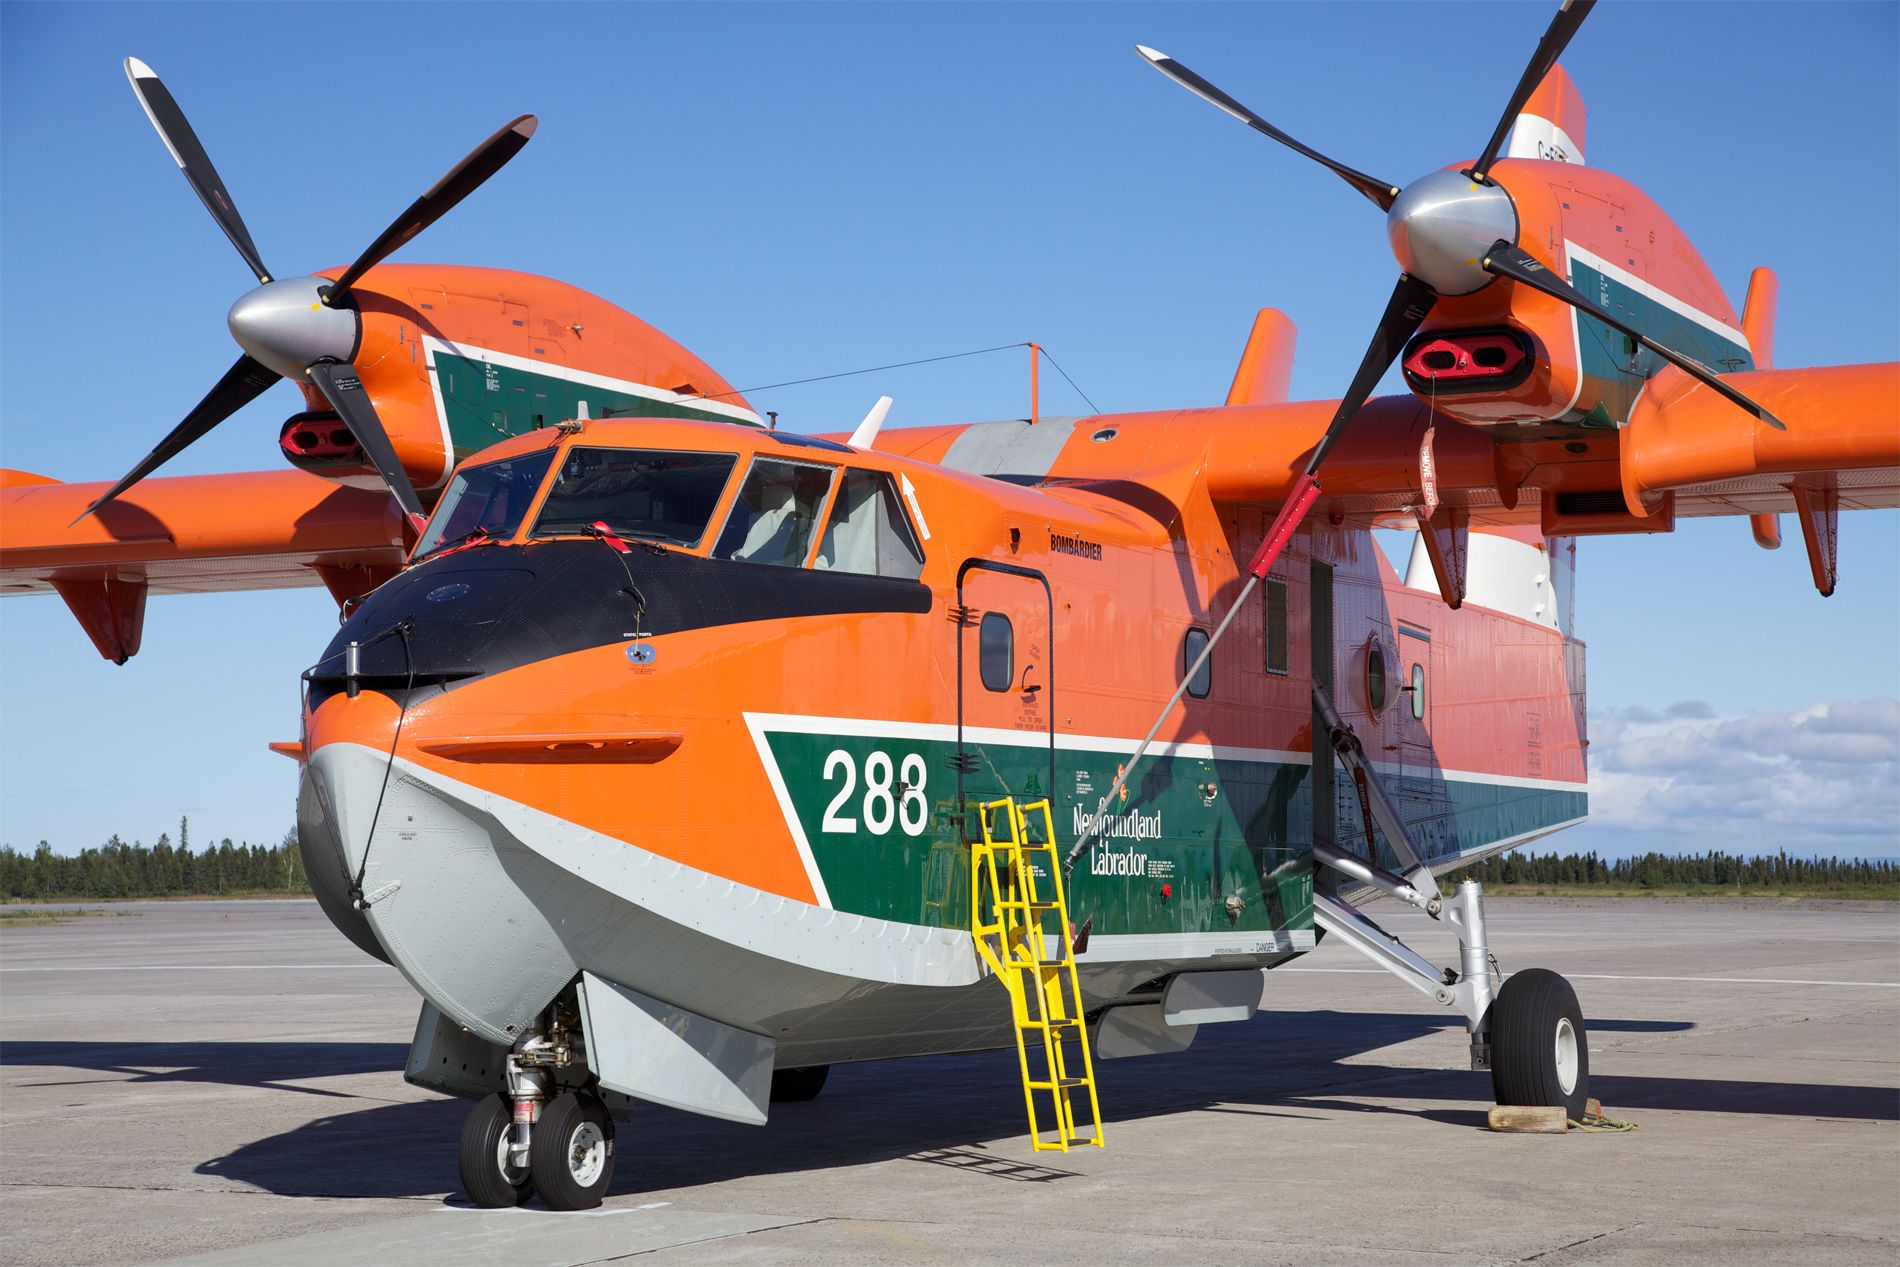 Big sea plane at Goose Bay airport for fire fighting.